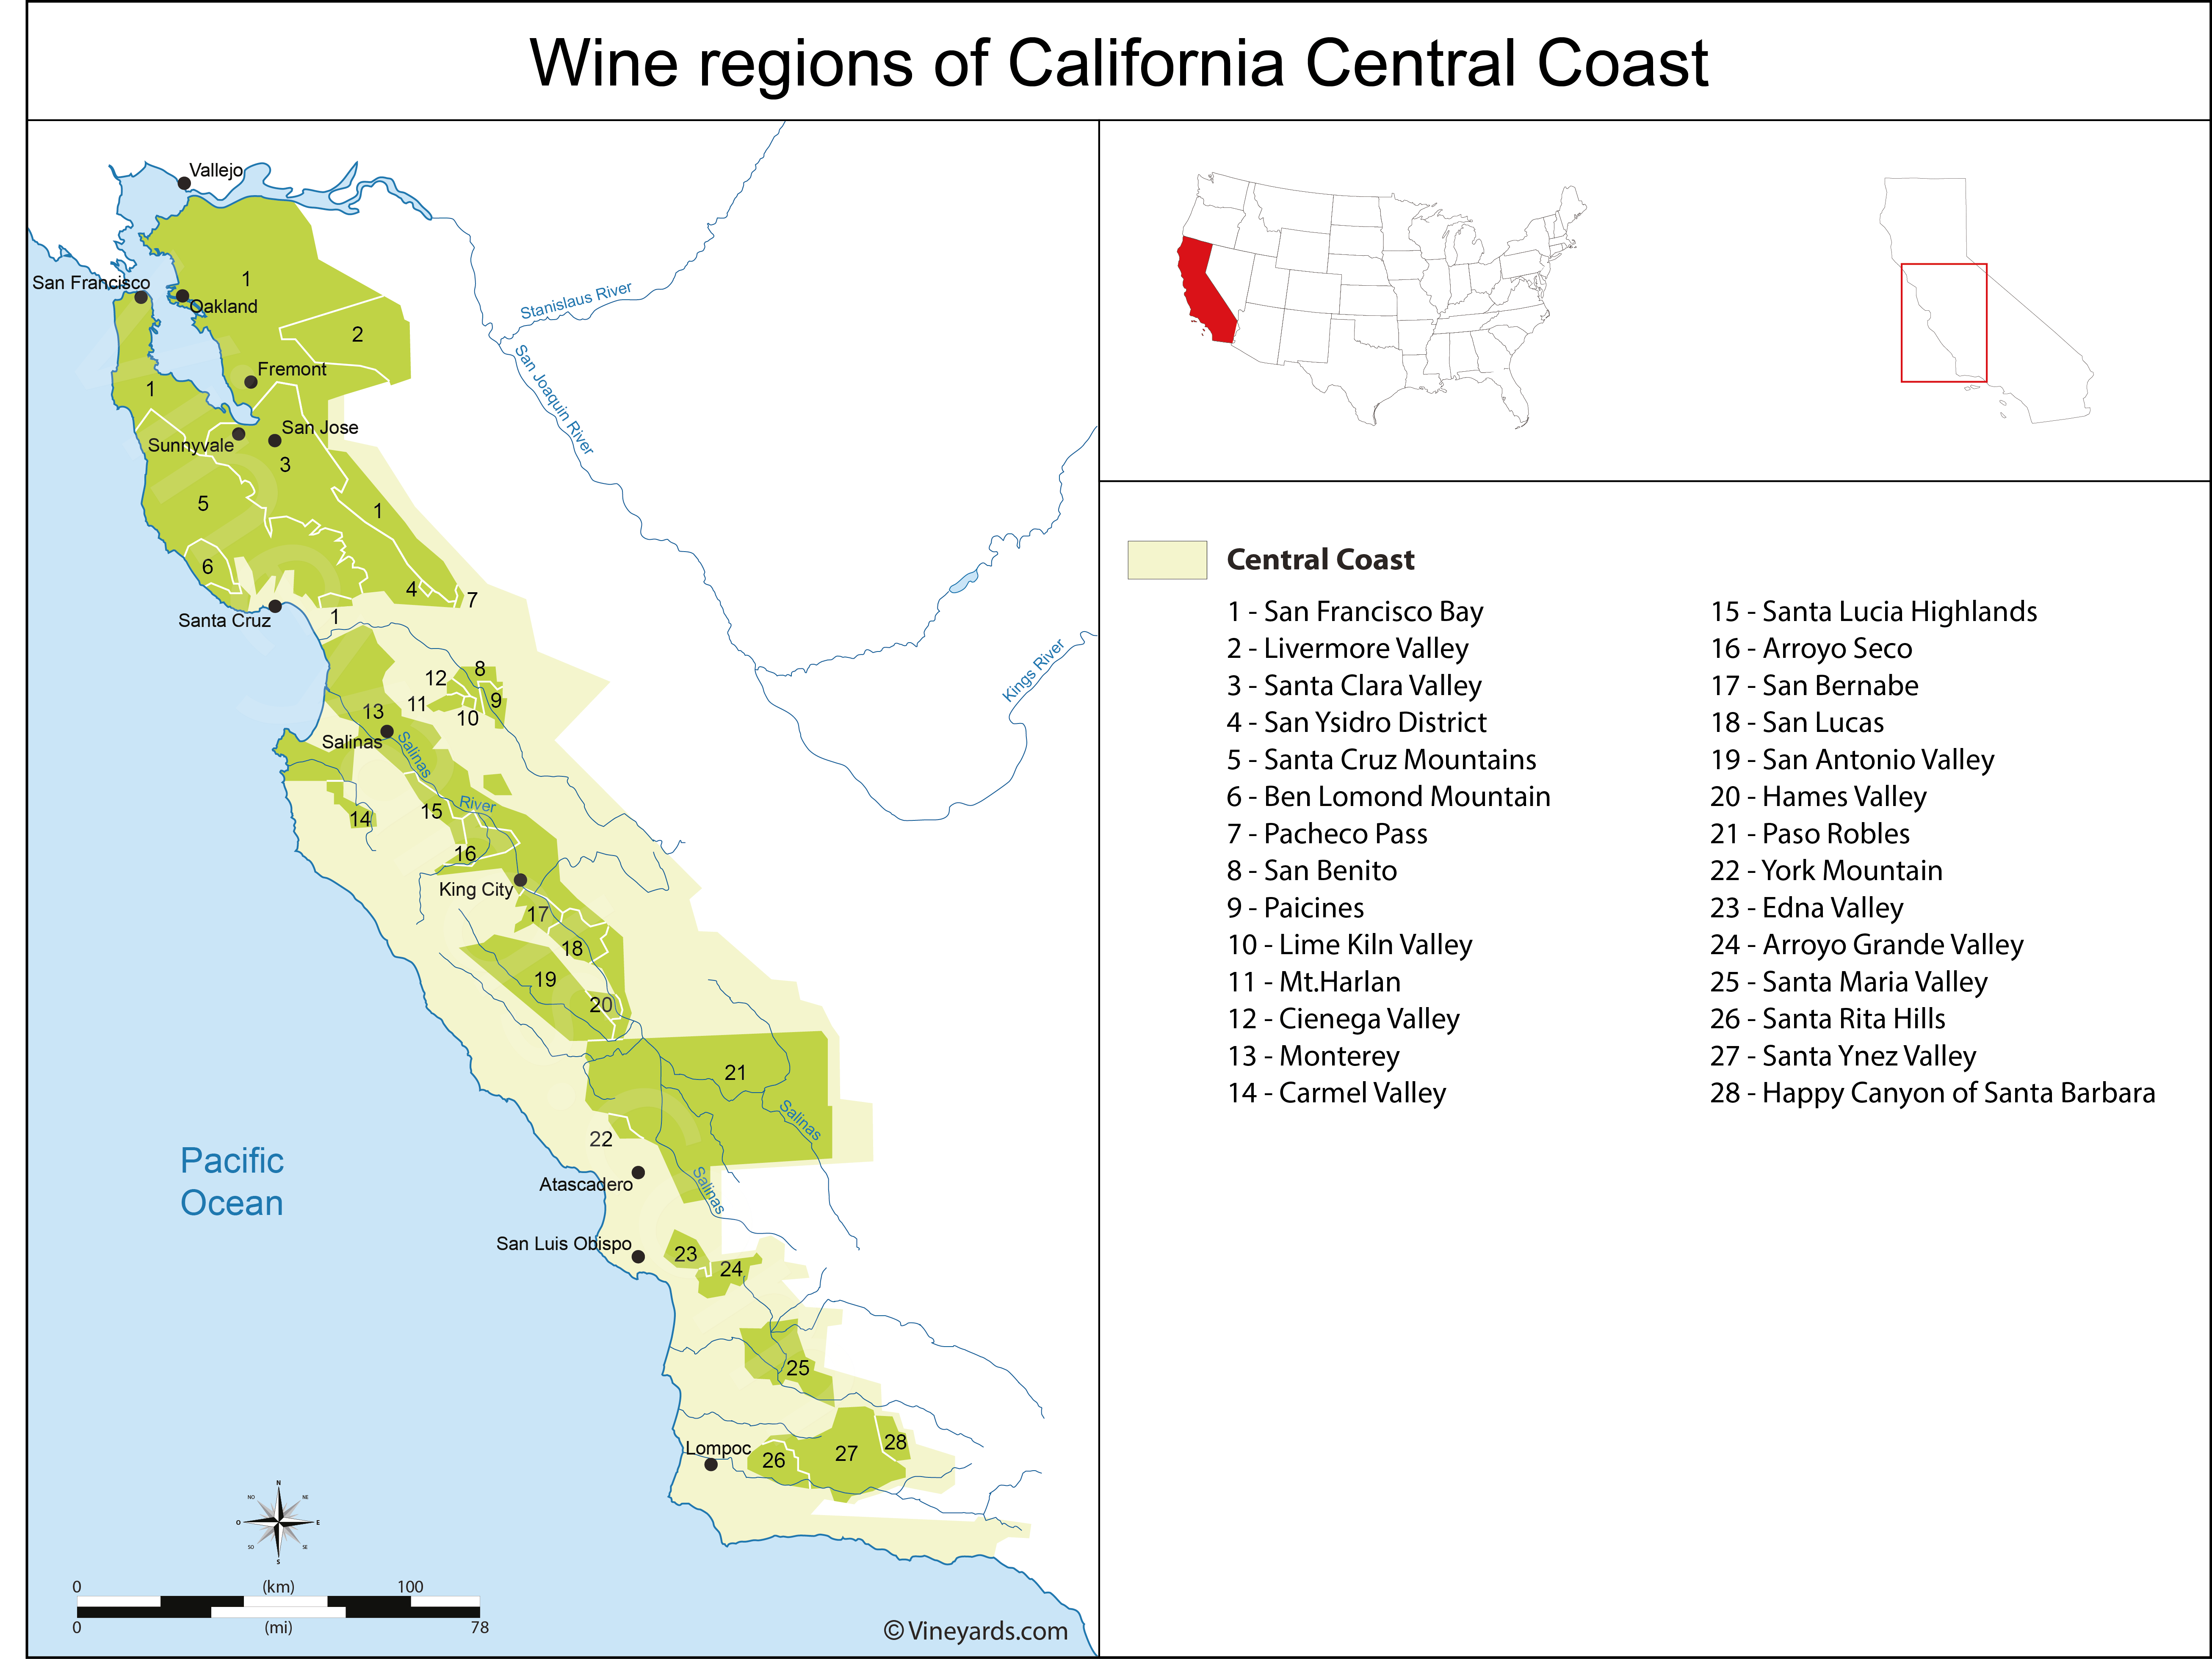 Wine Regions in California Central Coast